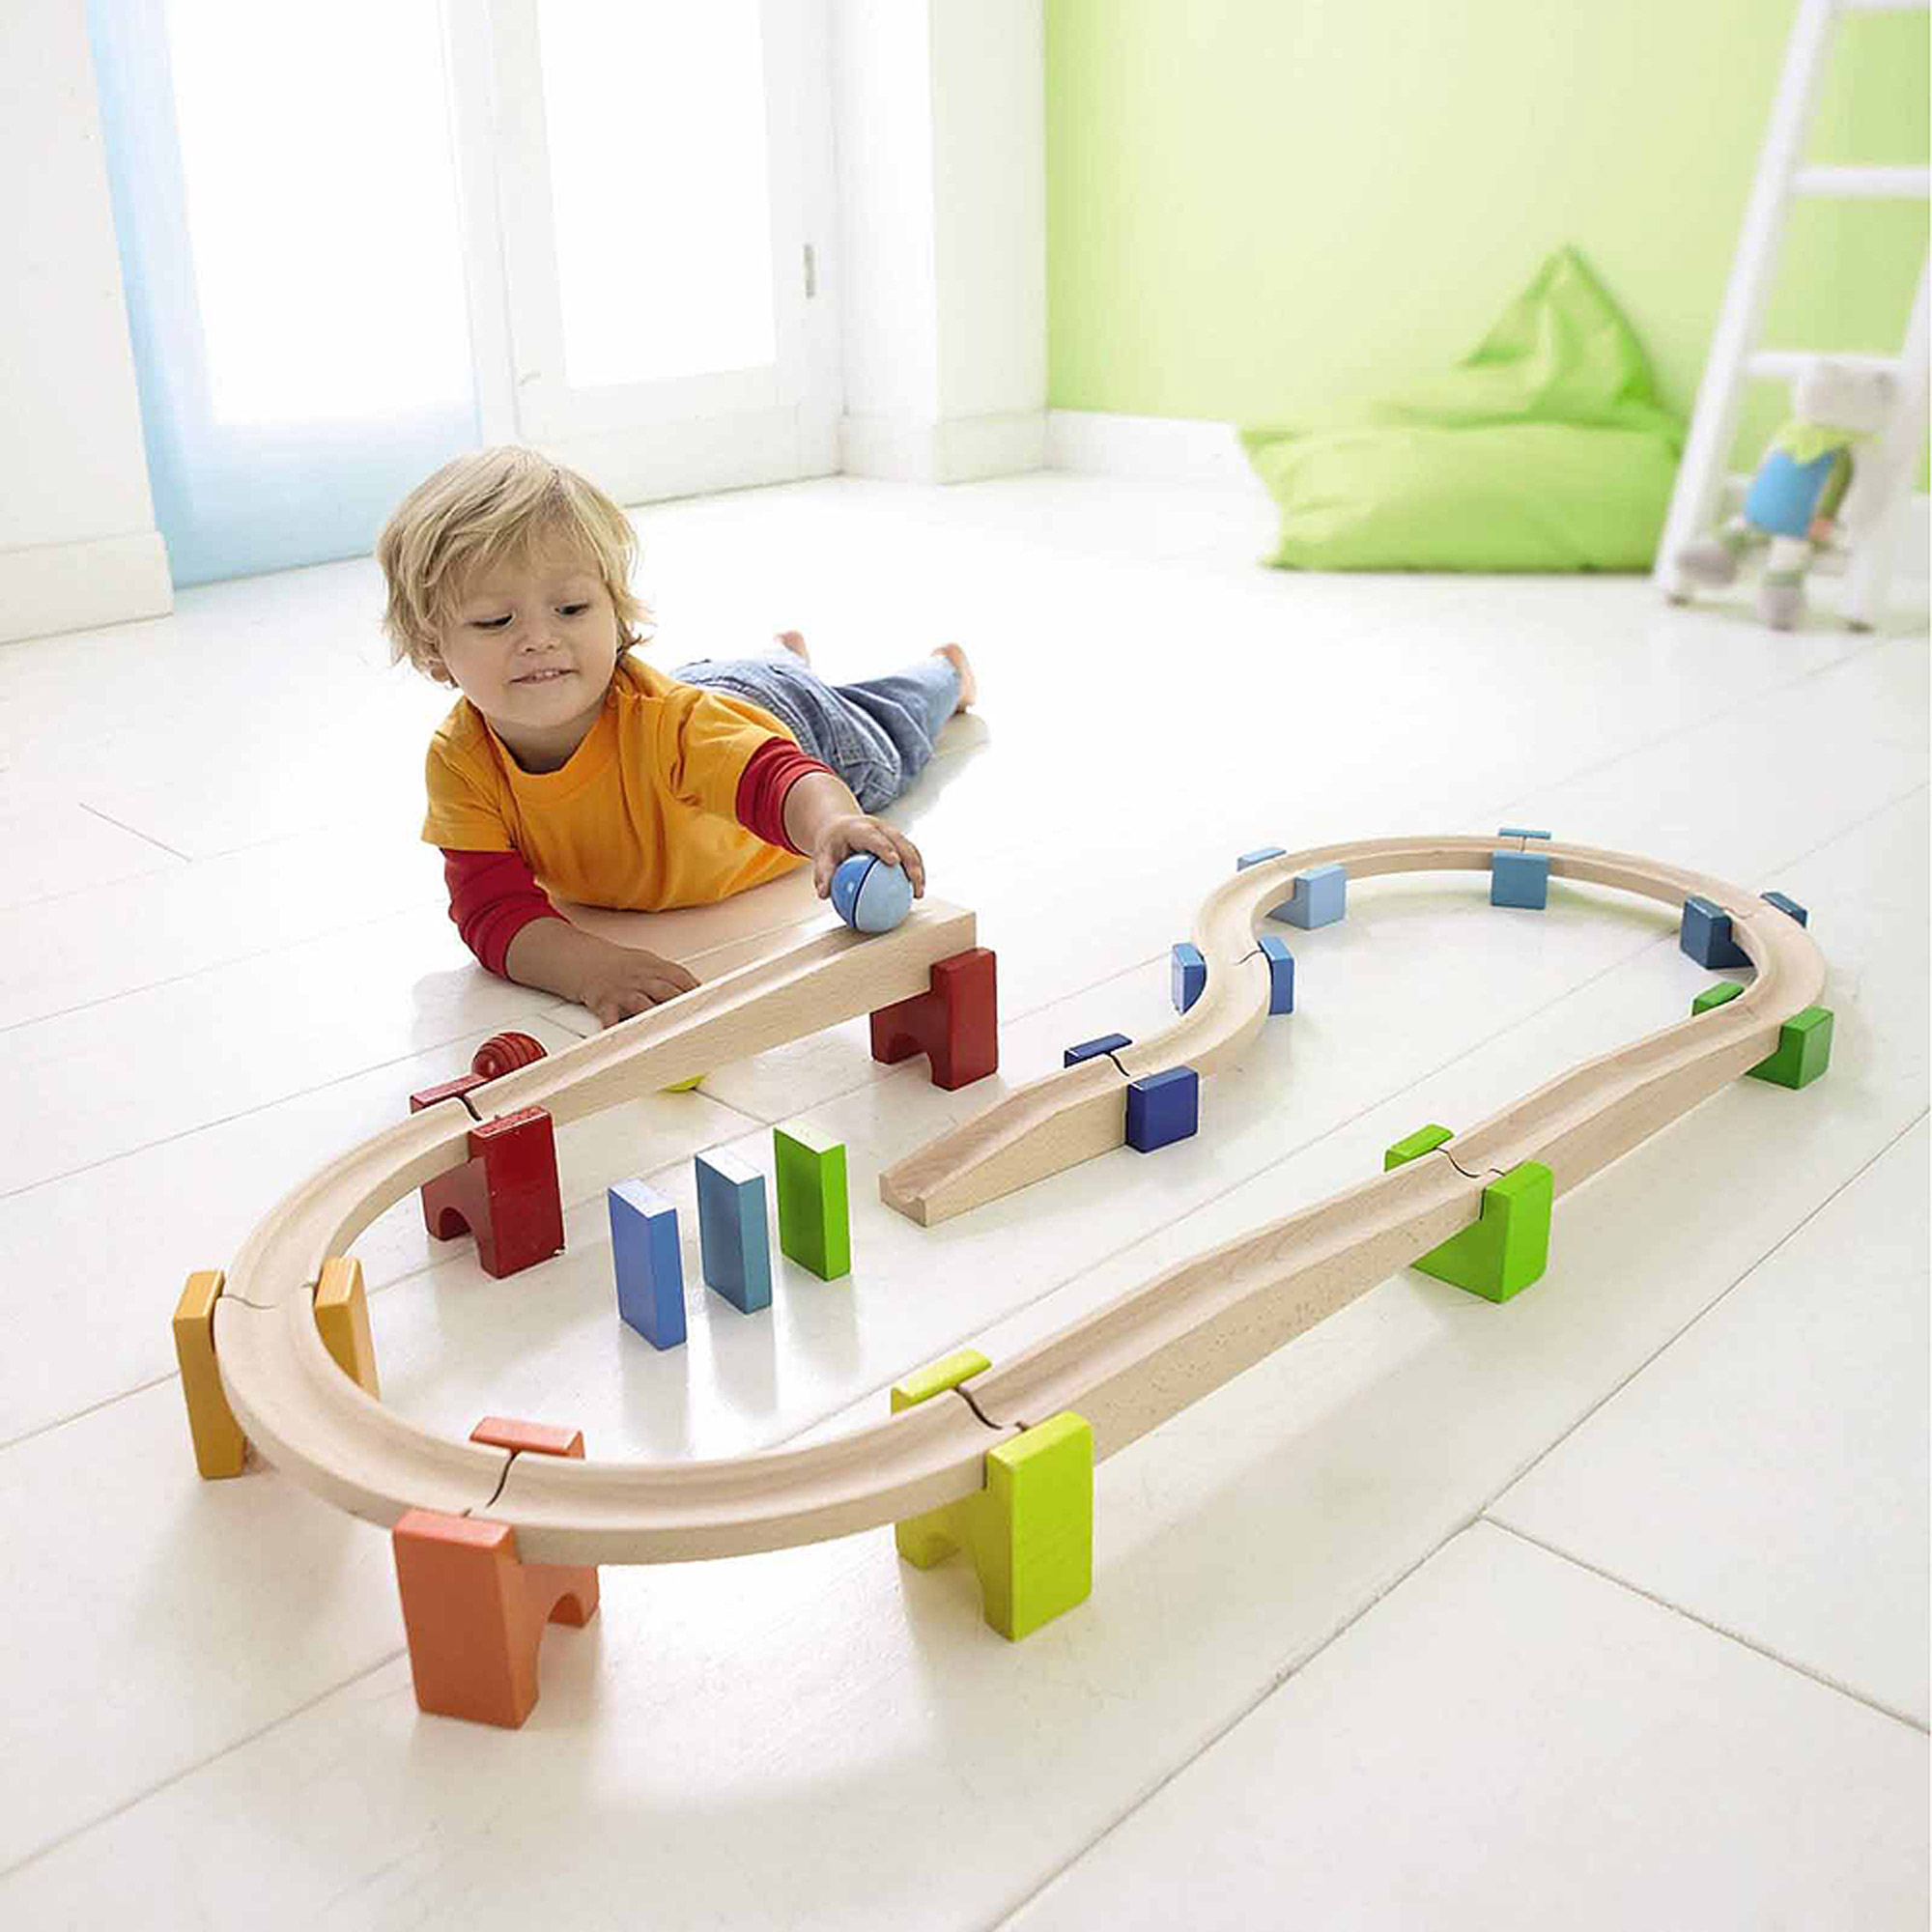 HABA My First Ball Track, Large Basic Pack